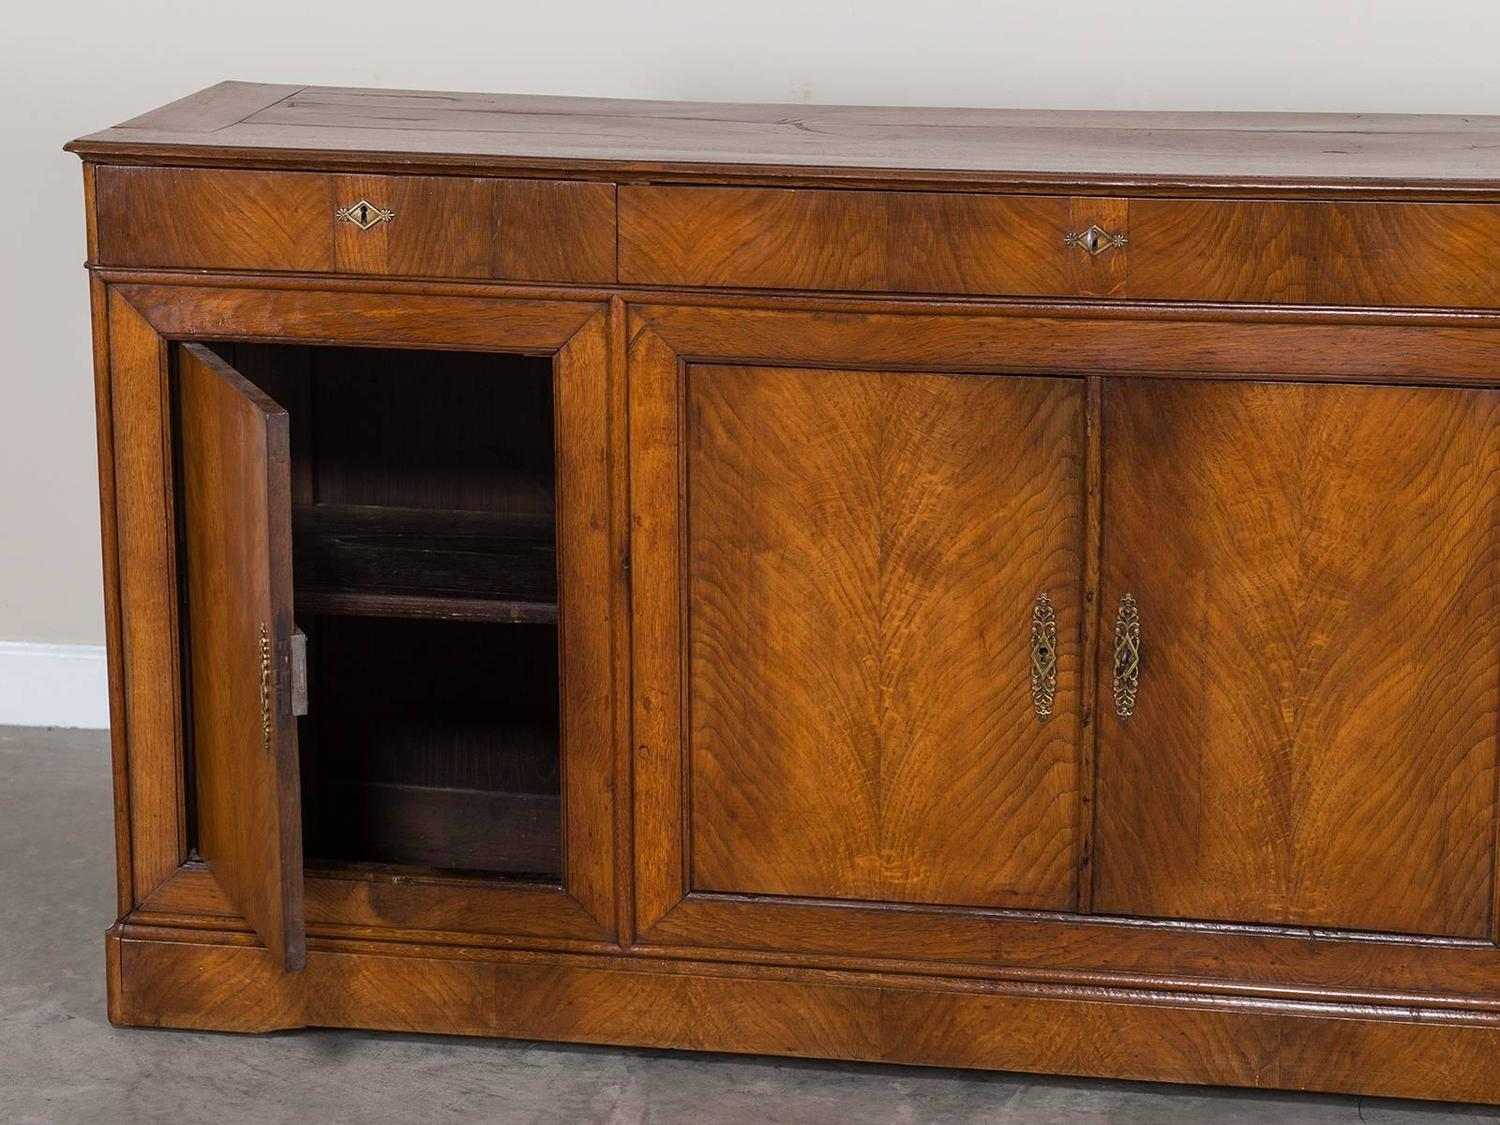 louis xvi style antique french elm buffet enfilade circa 1840 for sale at 1stdibs. Black Bedroom Furniture Sets. Home Design Ideas